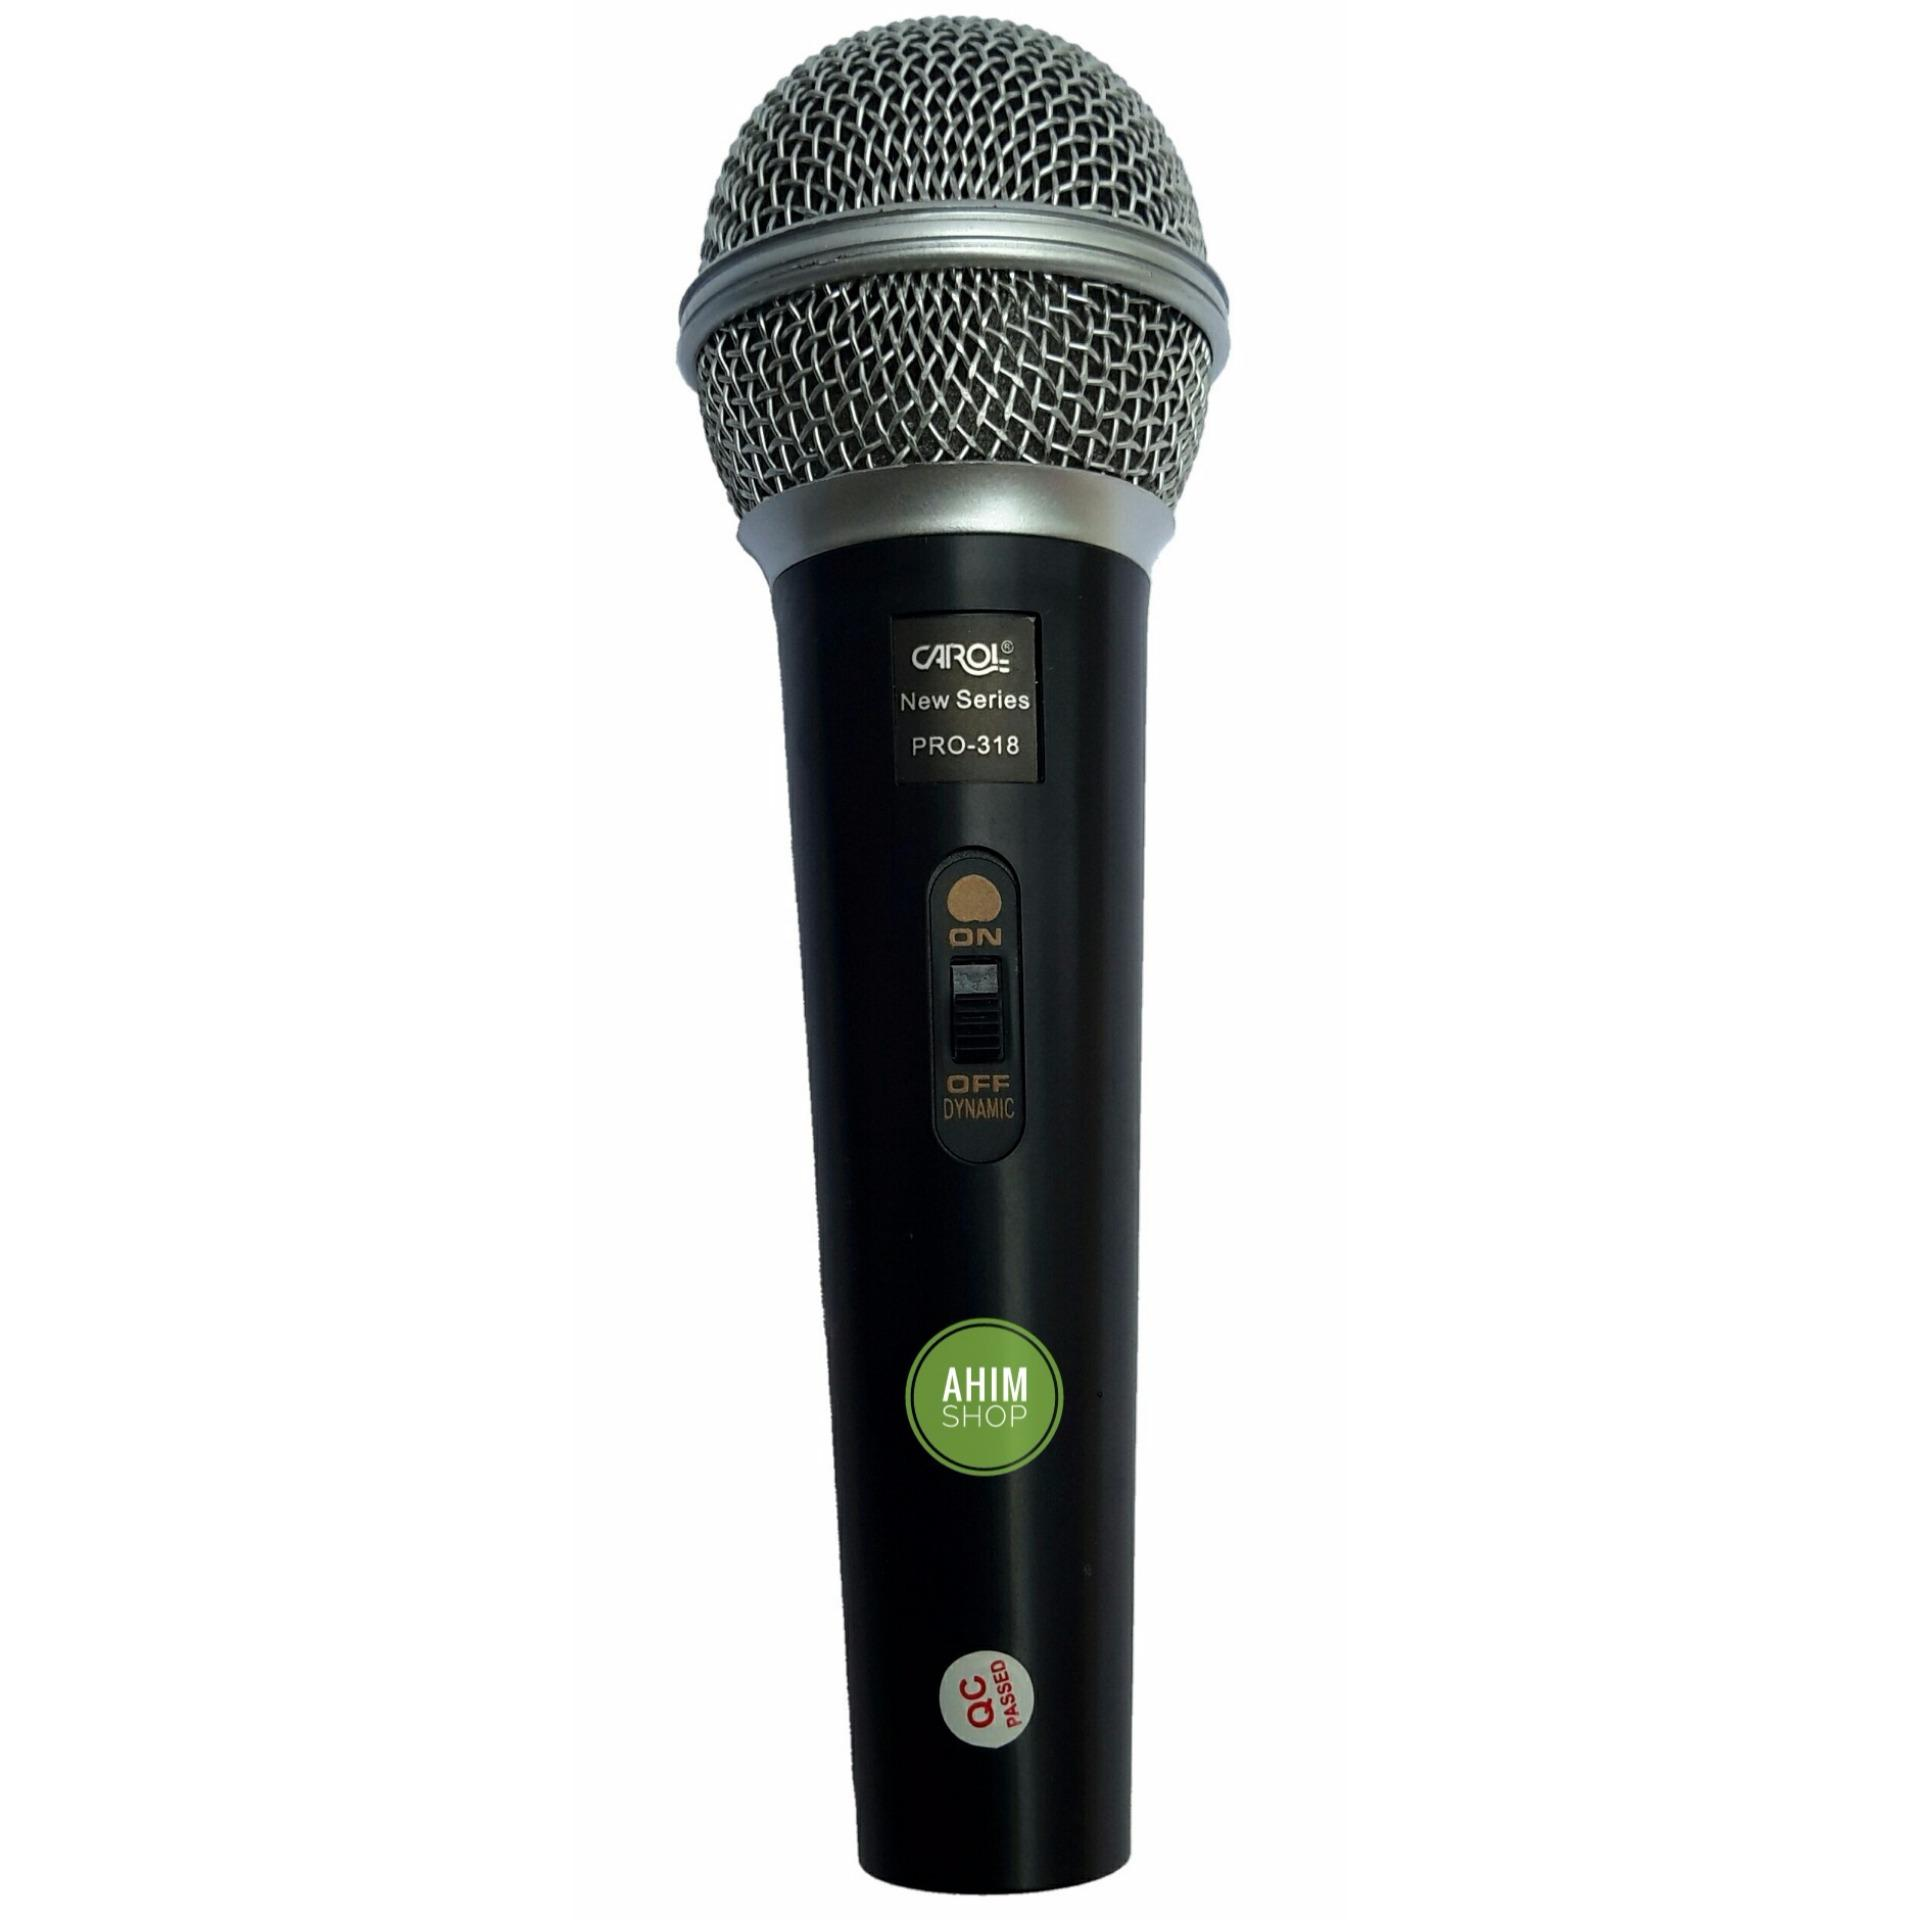 White Sands Mic Microfon Microphone Homic Hm 138 Sistem Kabel Double Wireless 306 Source